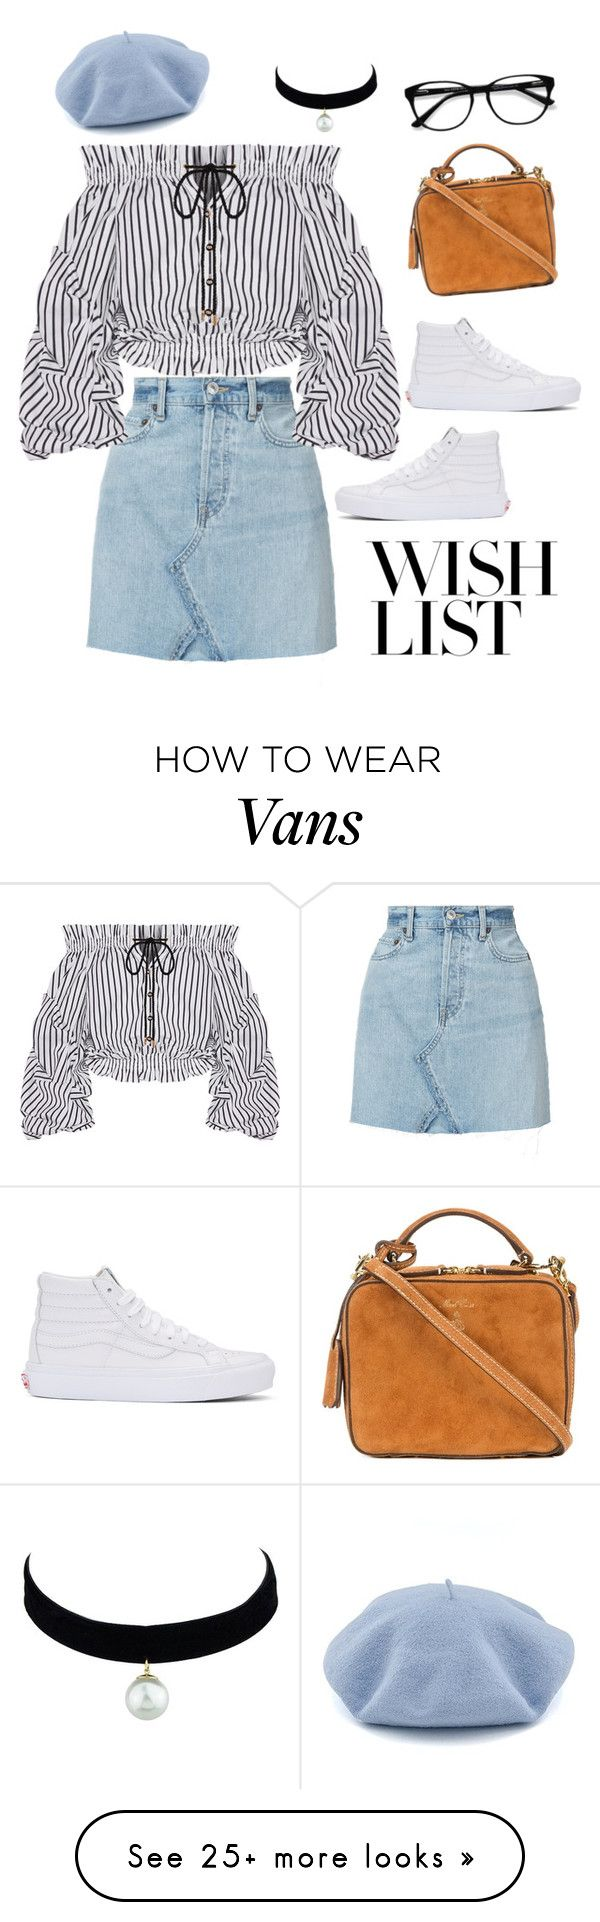 """""""#PolyPresents: Wish List"""" by amandecg on Polyvore featuring RE/DONE, Caroline Constas, EyeBuyDirect.com, Vans, Mark Cross, contestentry and polyPresents"""